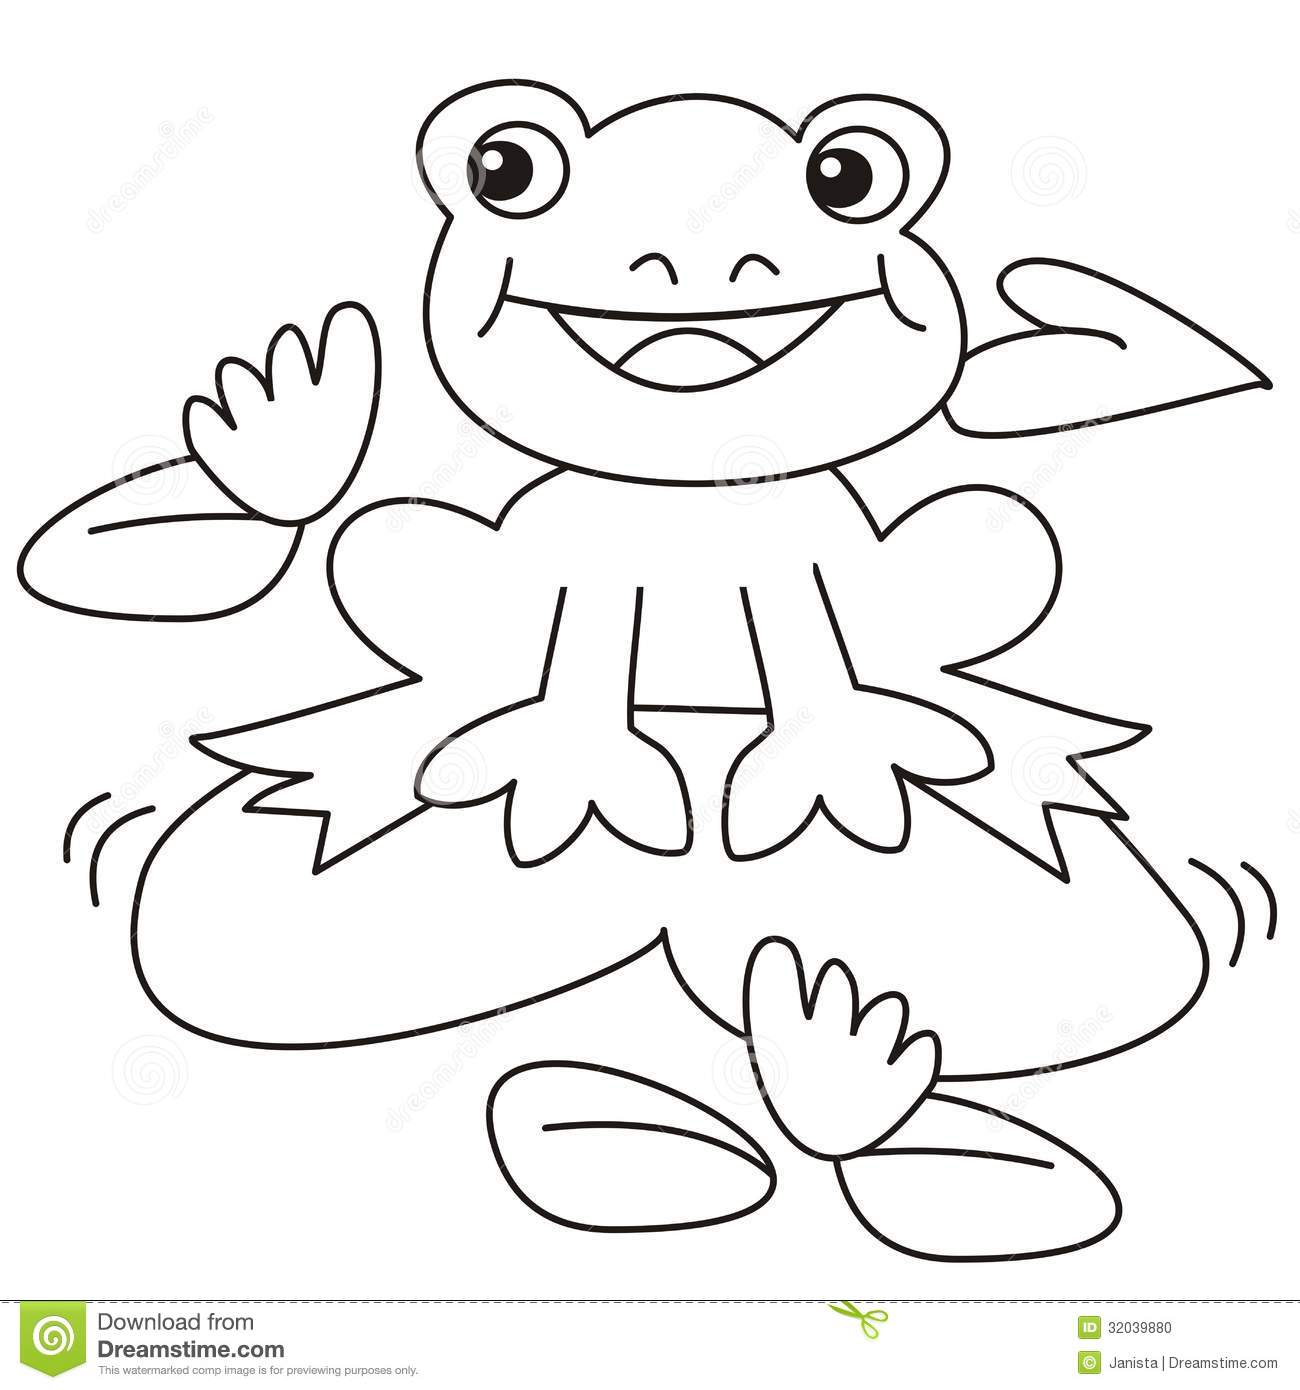 Frog-coloring stock vector. Illustration of folio, pastime - 32039880